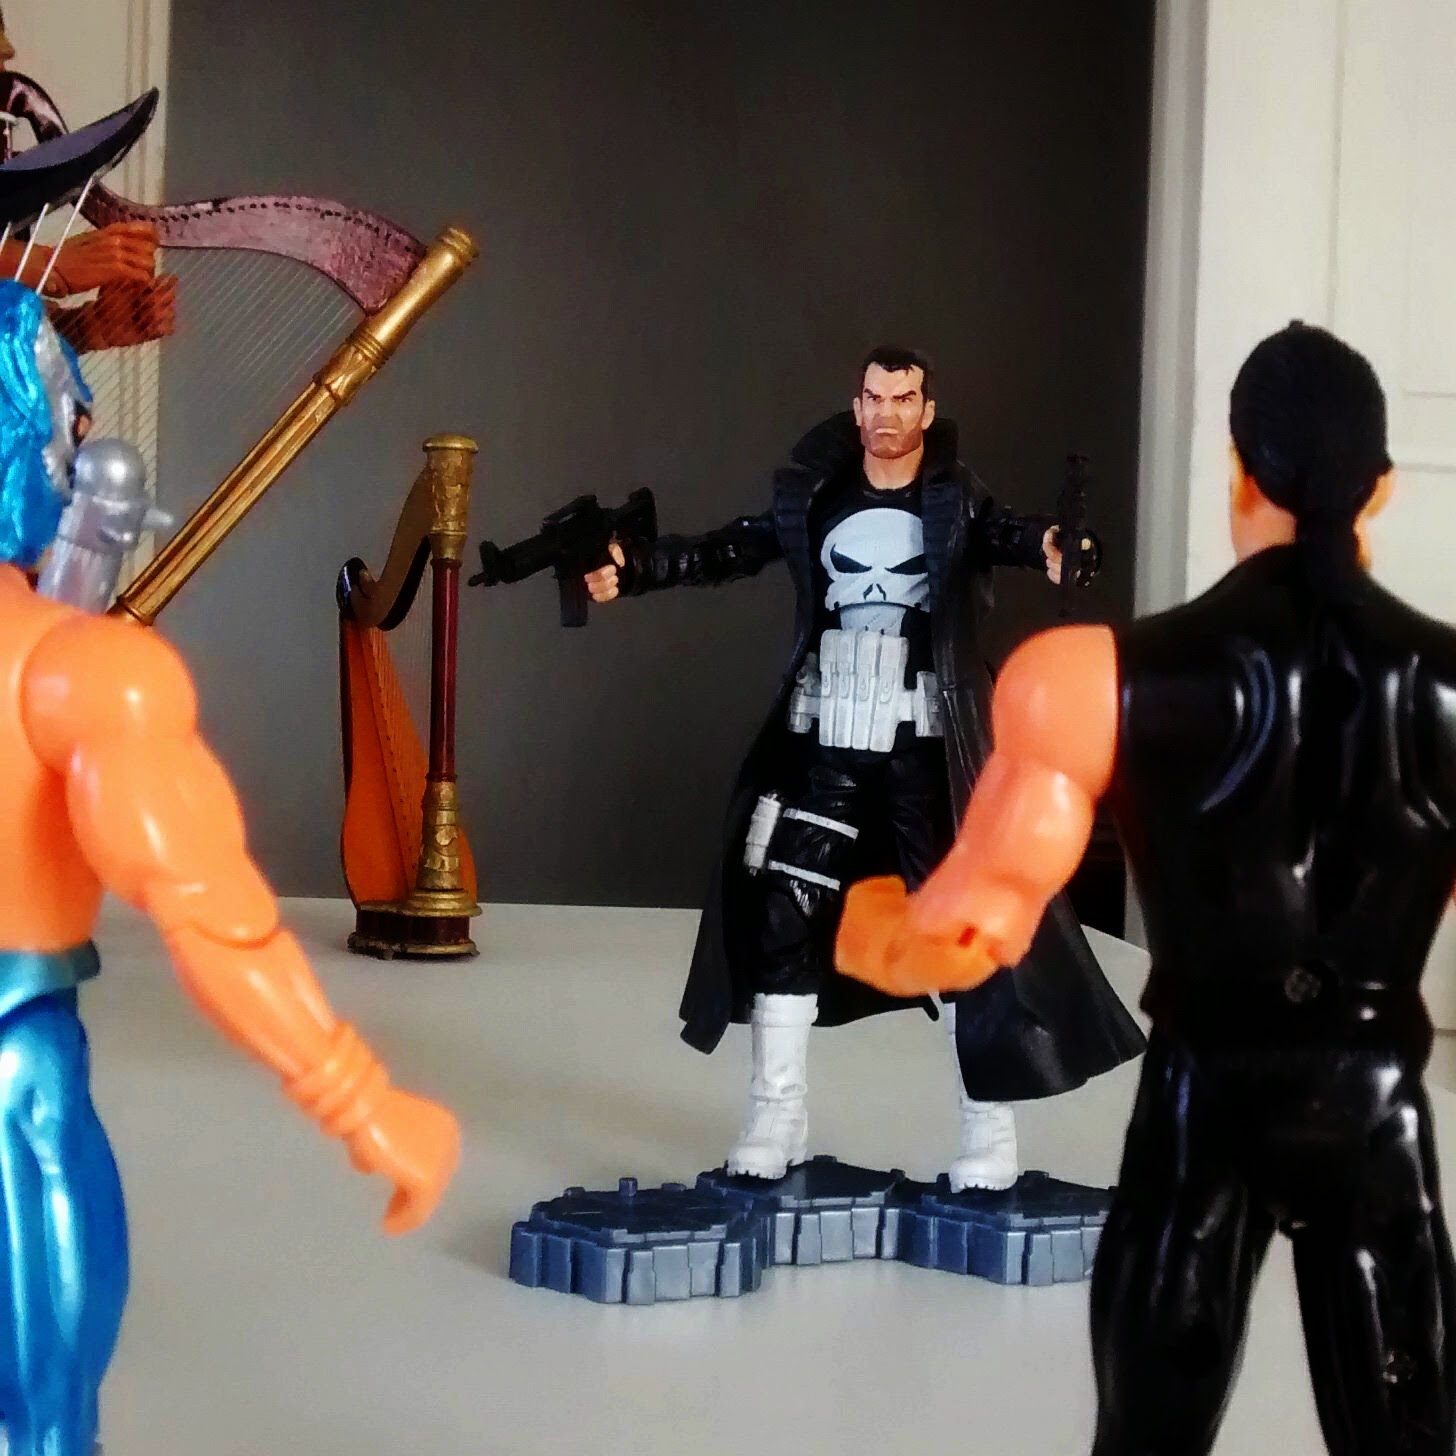 The Punisher vs Cheap Plastic Wrestlers 2